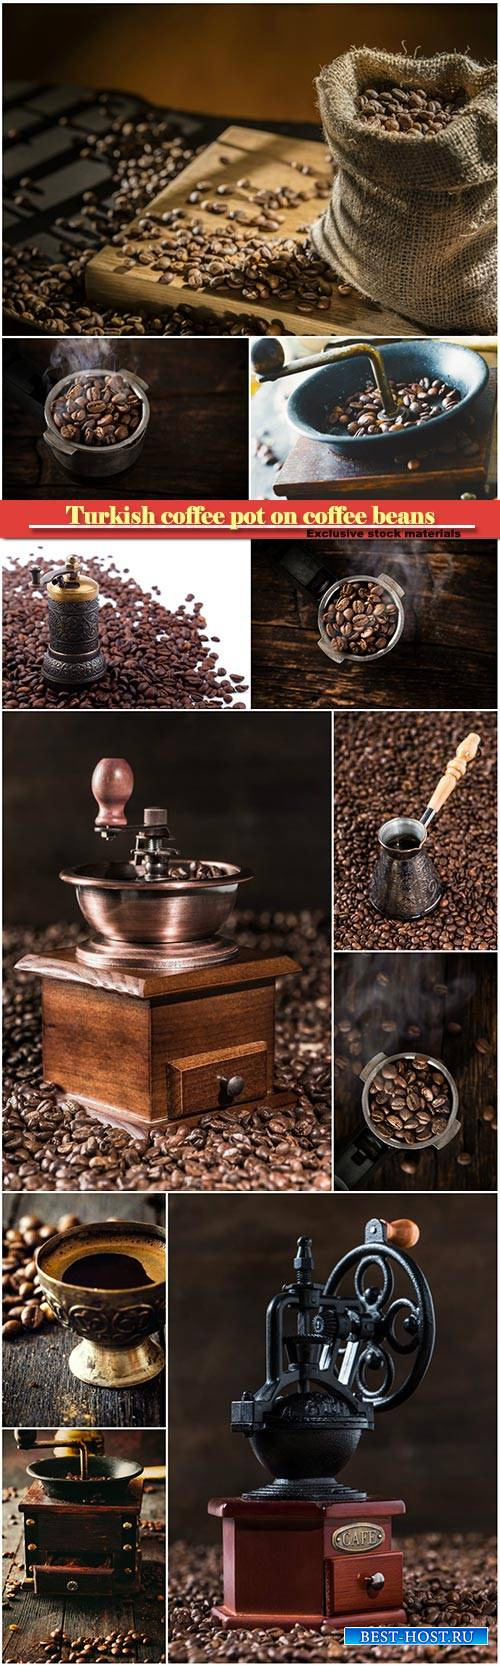 Turkish coffee pot on coffee beans, coffee mill